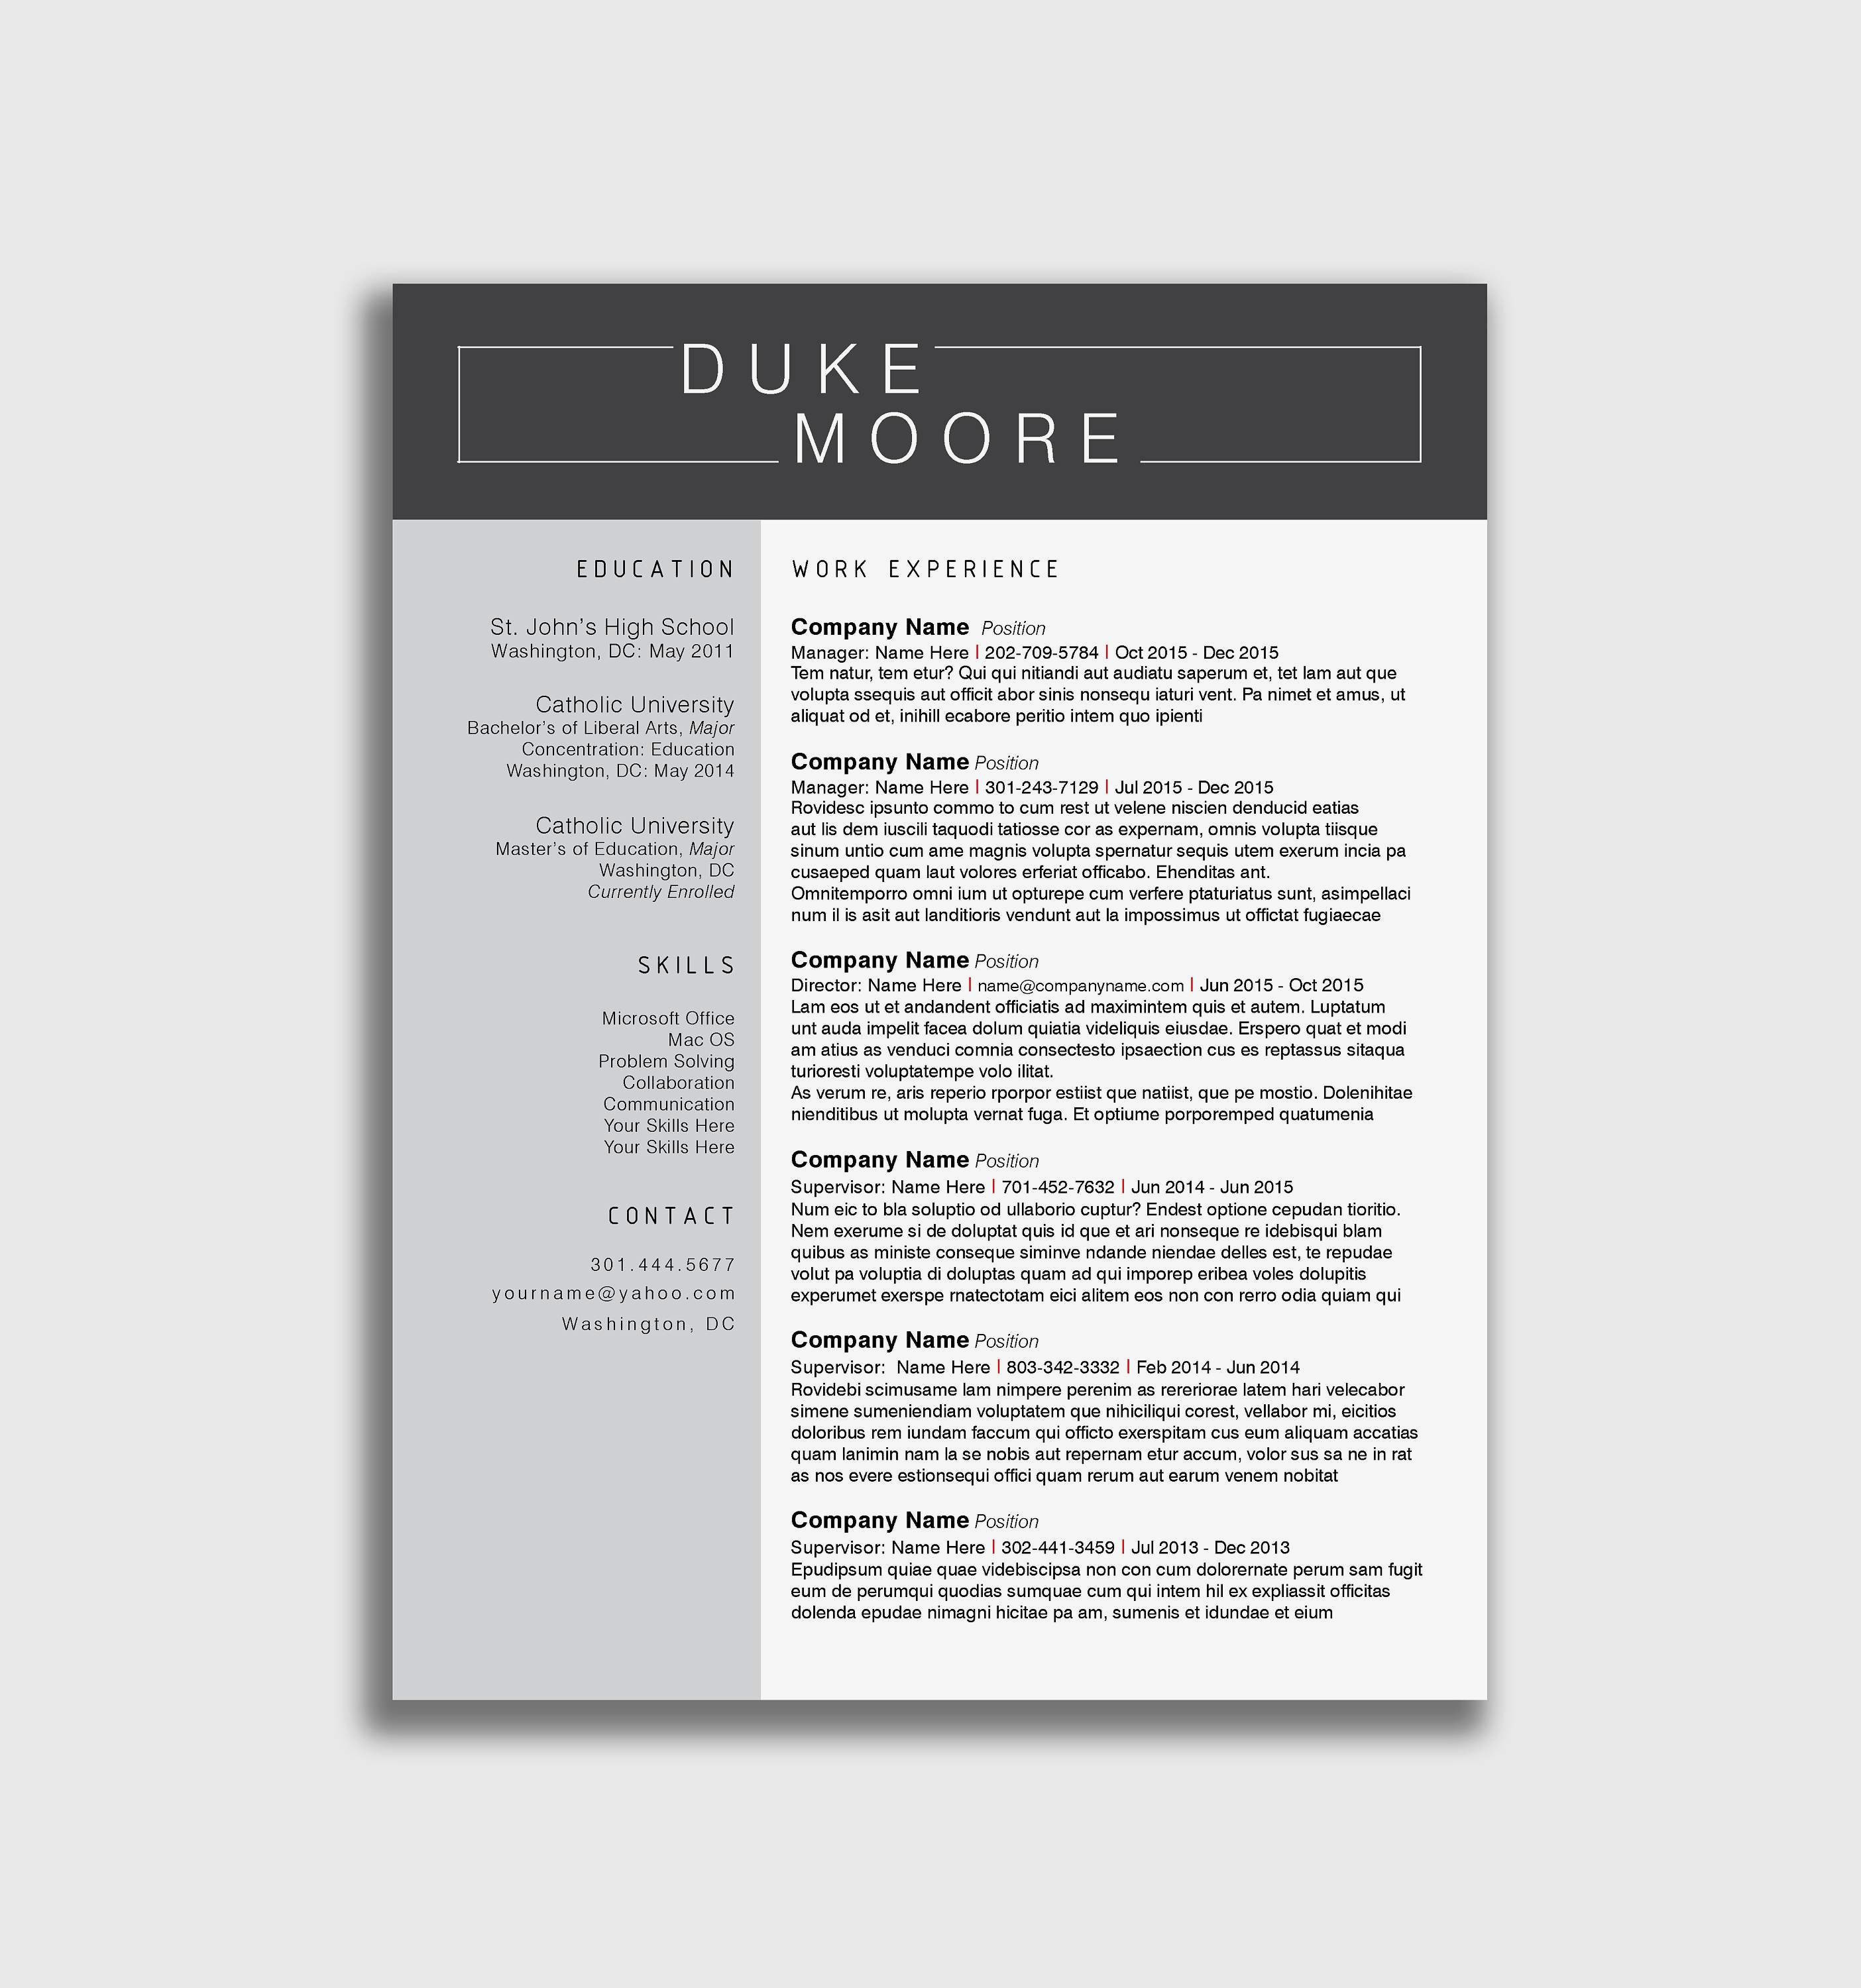 Exemple De Cv Cuisinier Example Resume D Luxury S Best Resume Samples New Resume